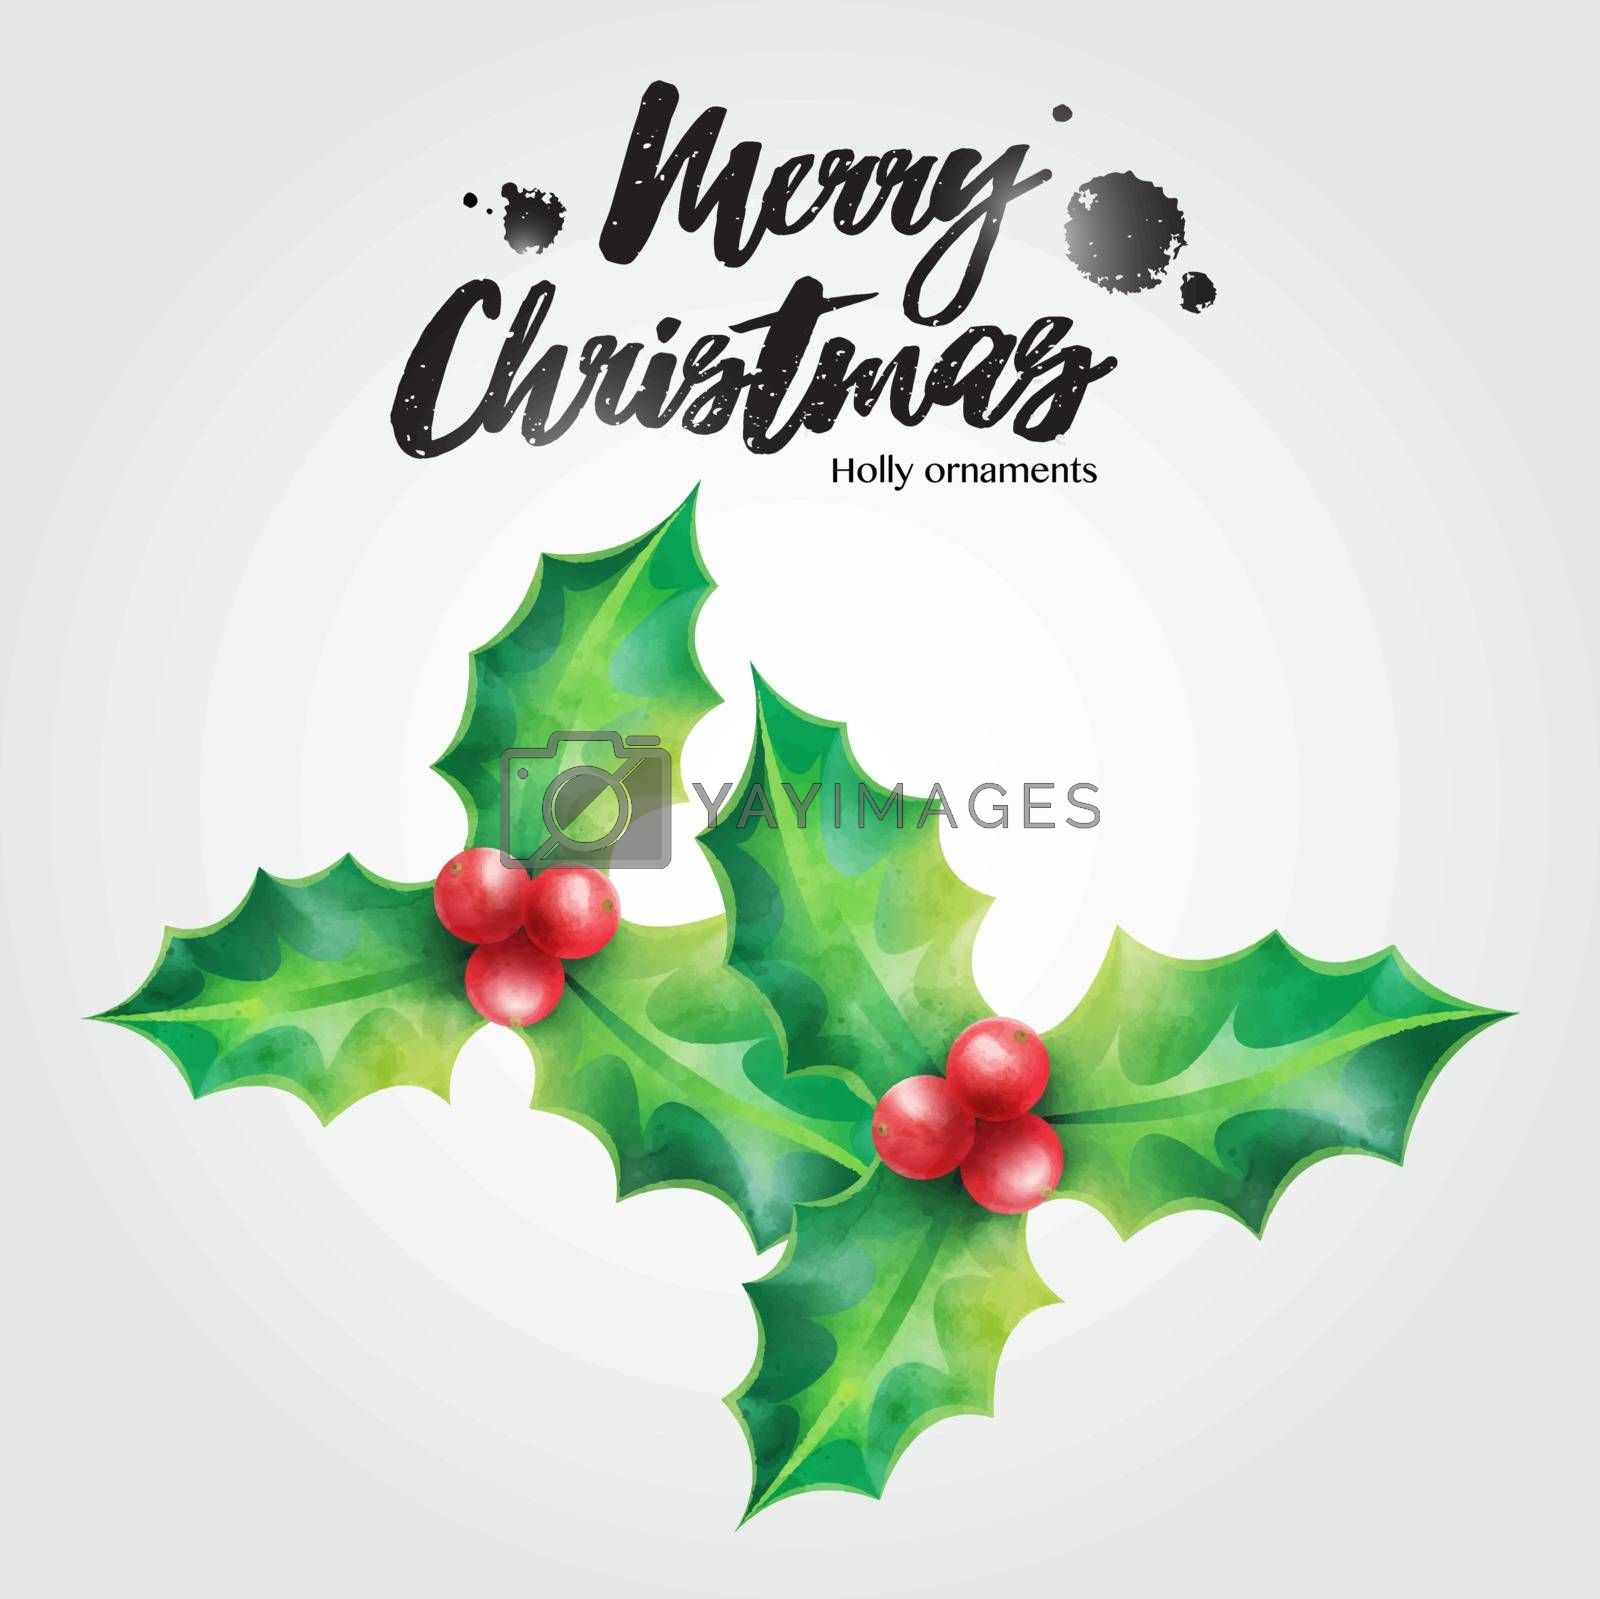 Merry Christmas greeting card, holly vector illustration Christmas ornaments on white background